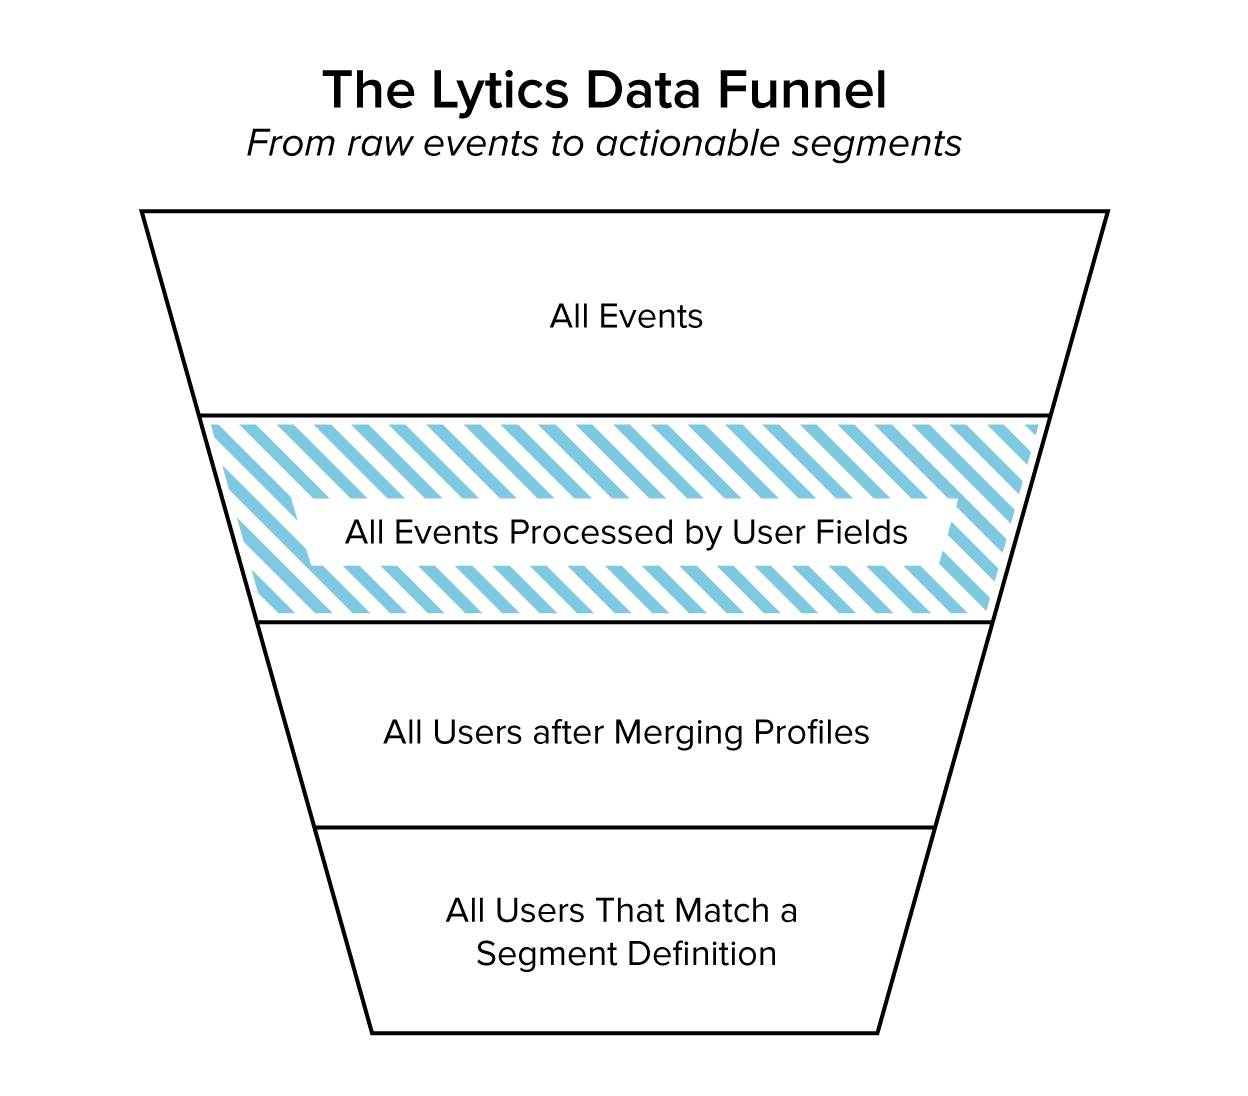 Processed events by means of User Fields is the second stage of the Lytics data funnel